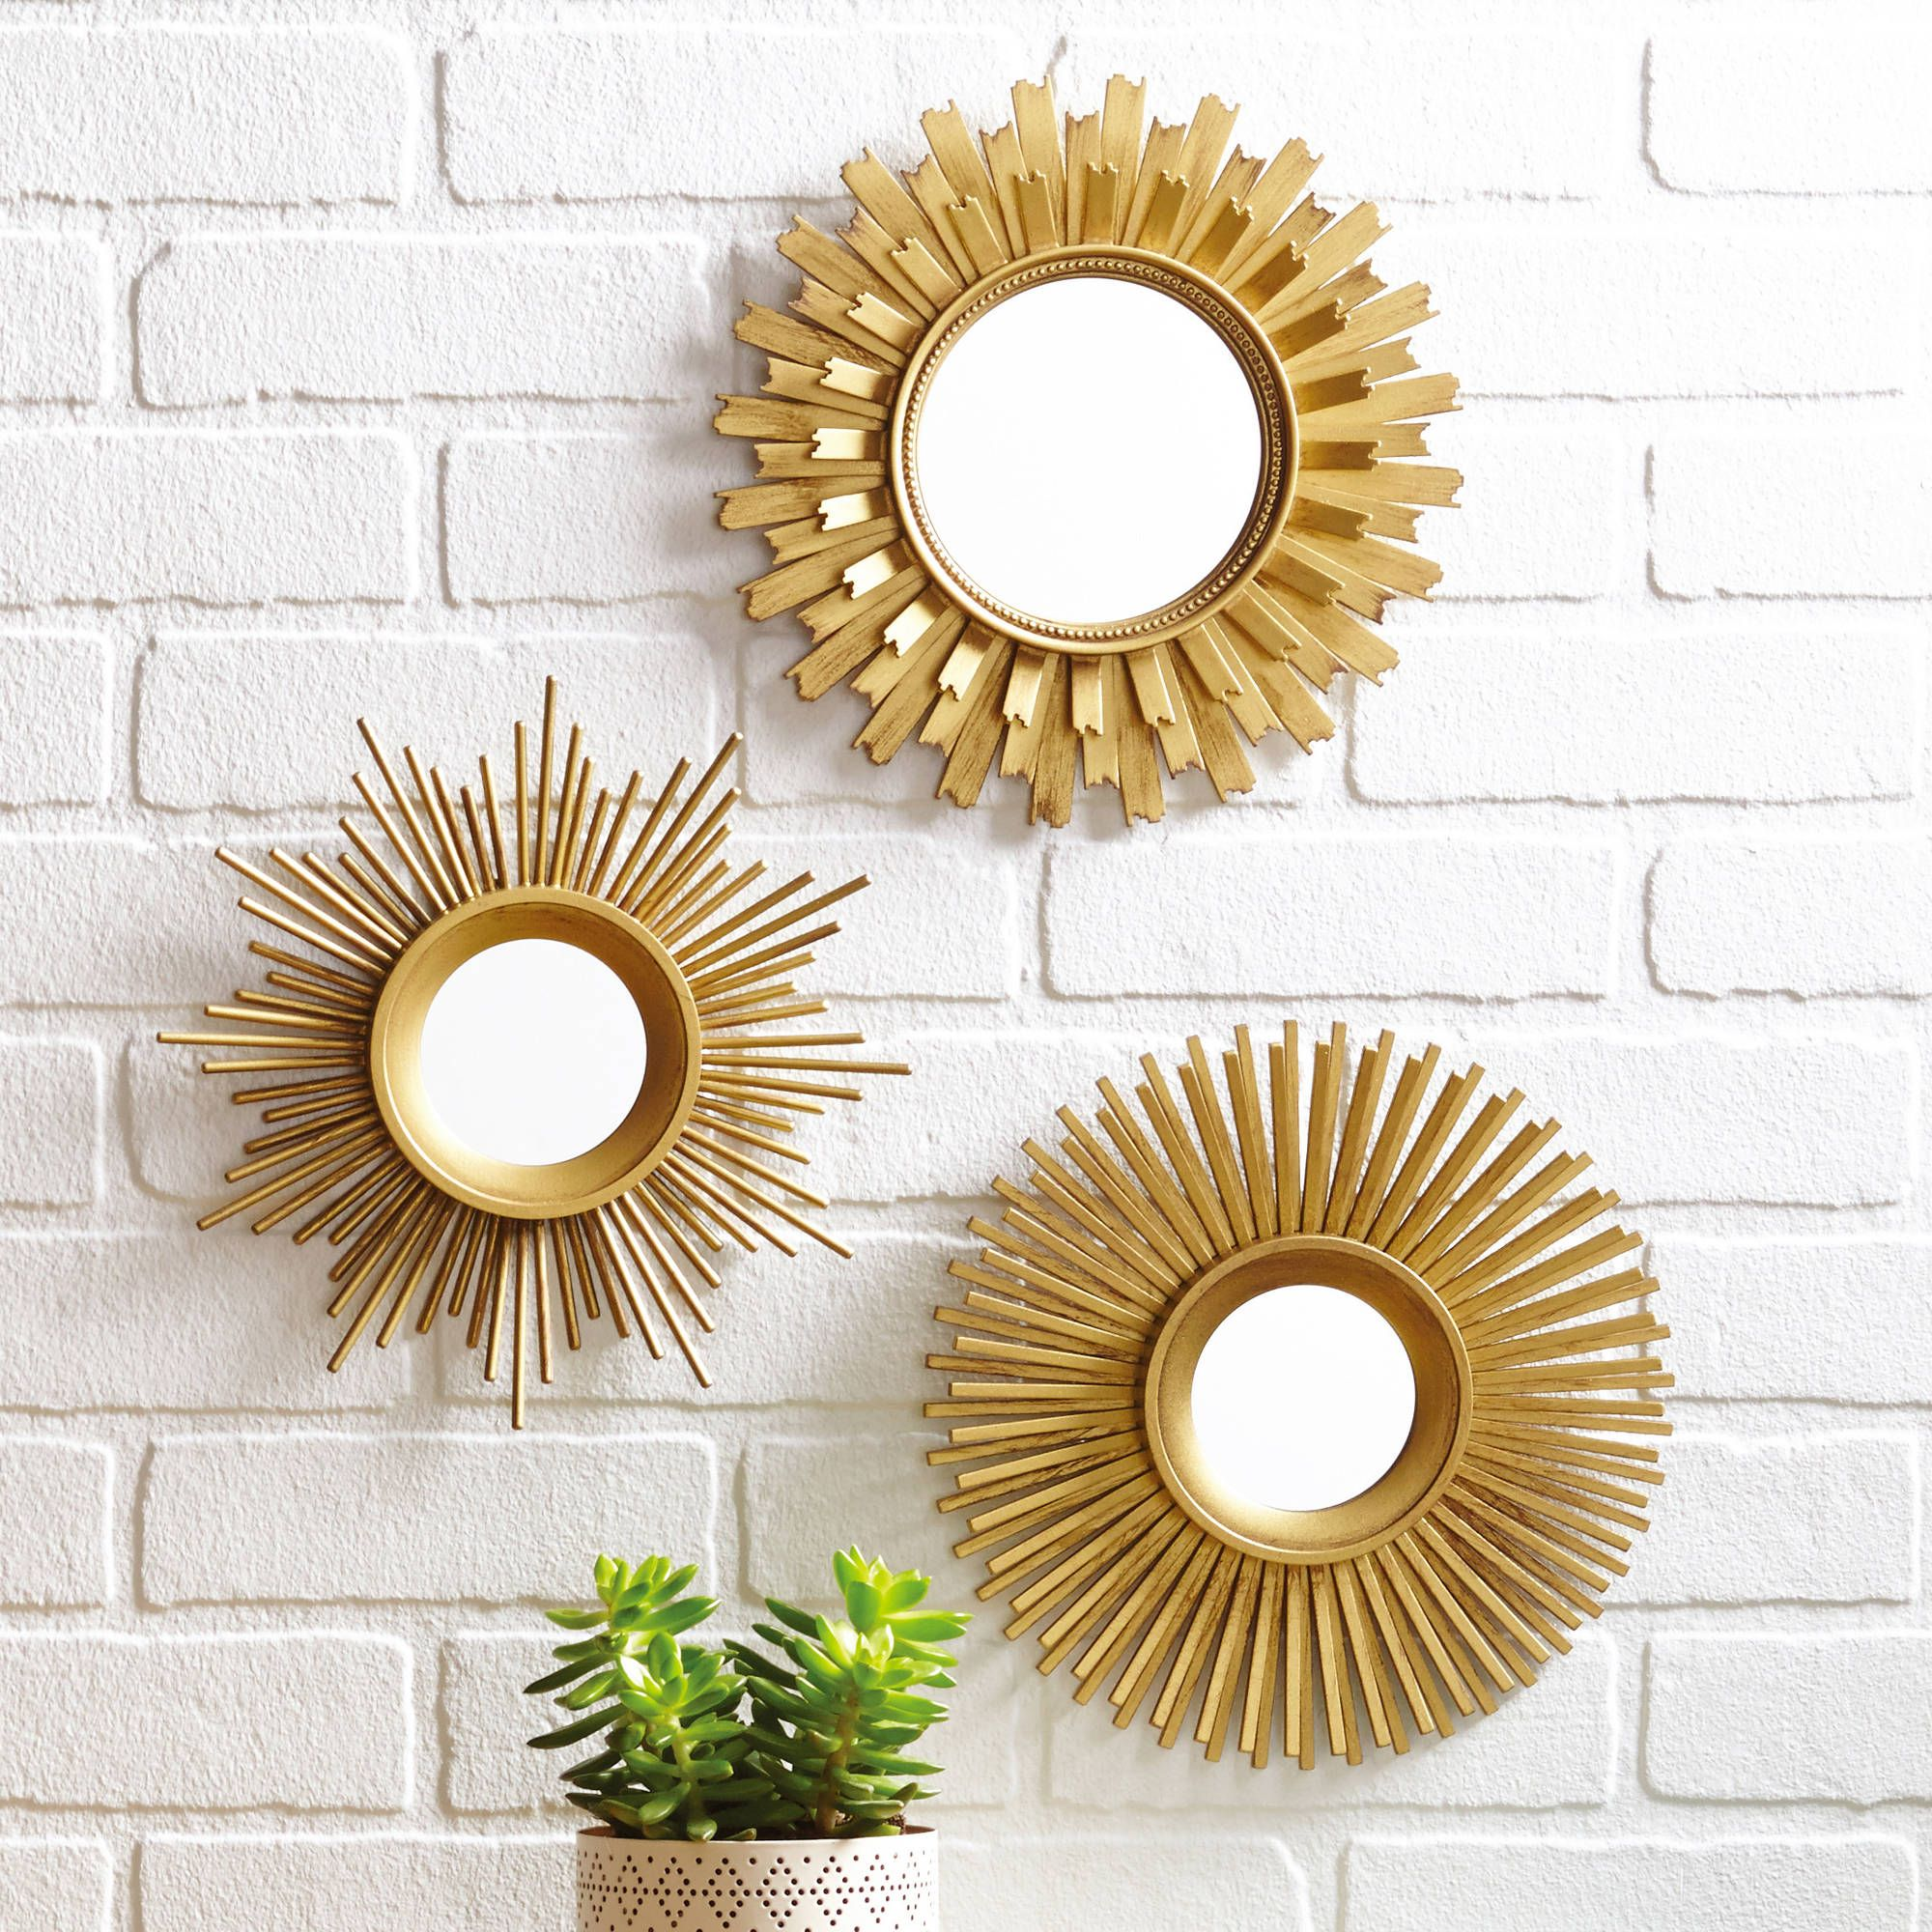 Home Sunburst Mirror Wall Gold Sunburst Mirror Gold Wall Decor